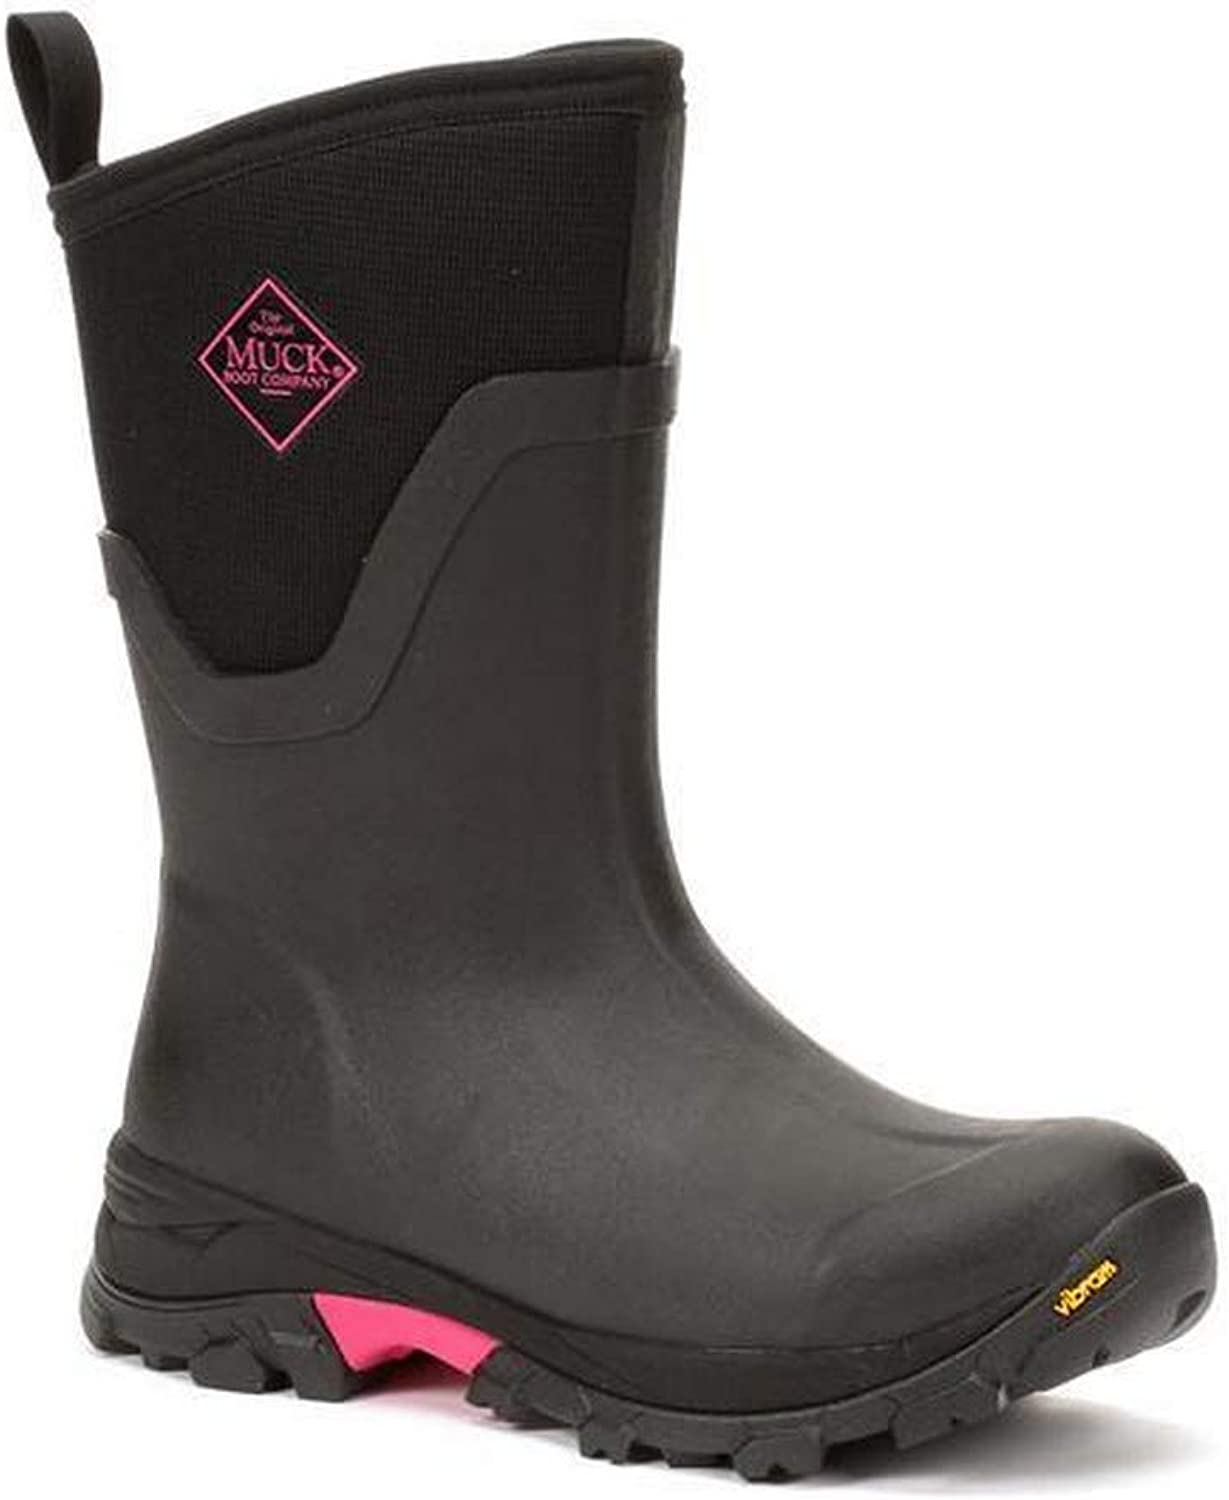 Muck Boots Womens Ladies Arctic Ice Mid Boot